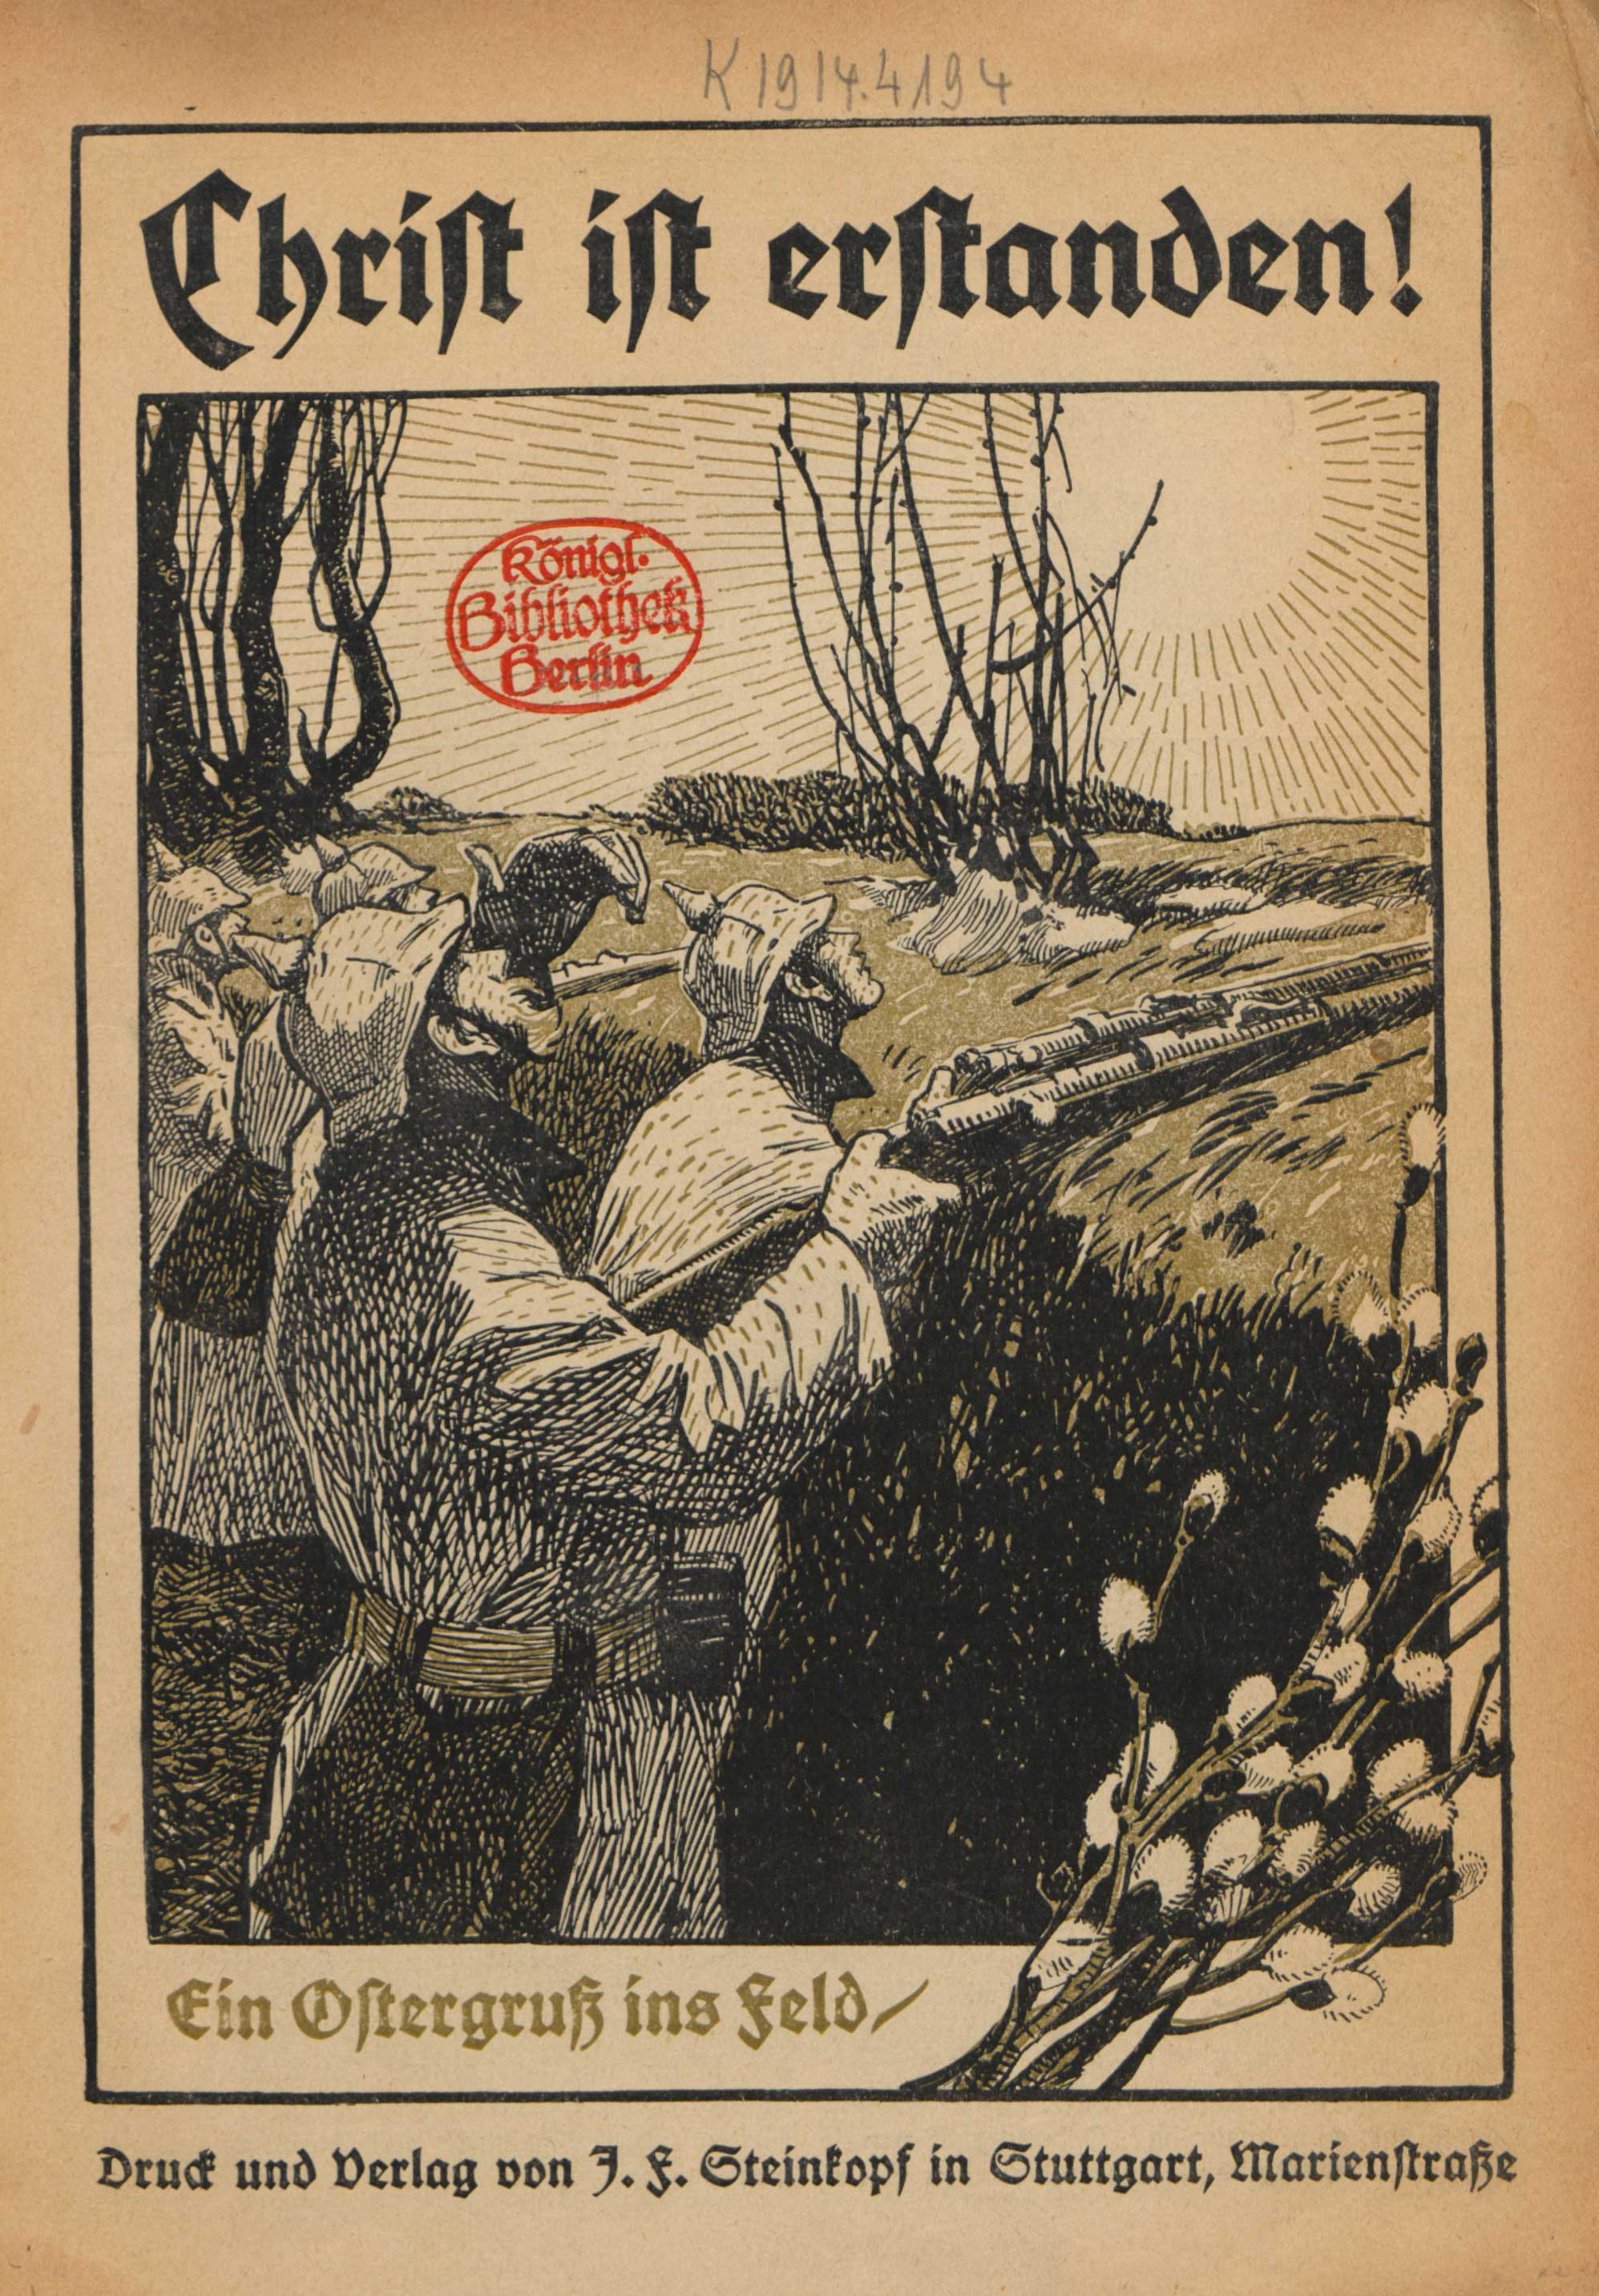 'Christ is risen!': Easter booklet, 1915. The energetic title glosses over the hardship of life in the trenches and emphasises the Christian promise of life after death.